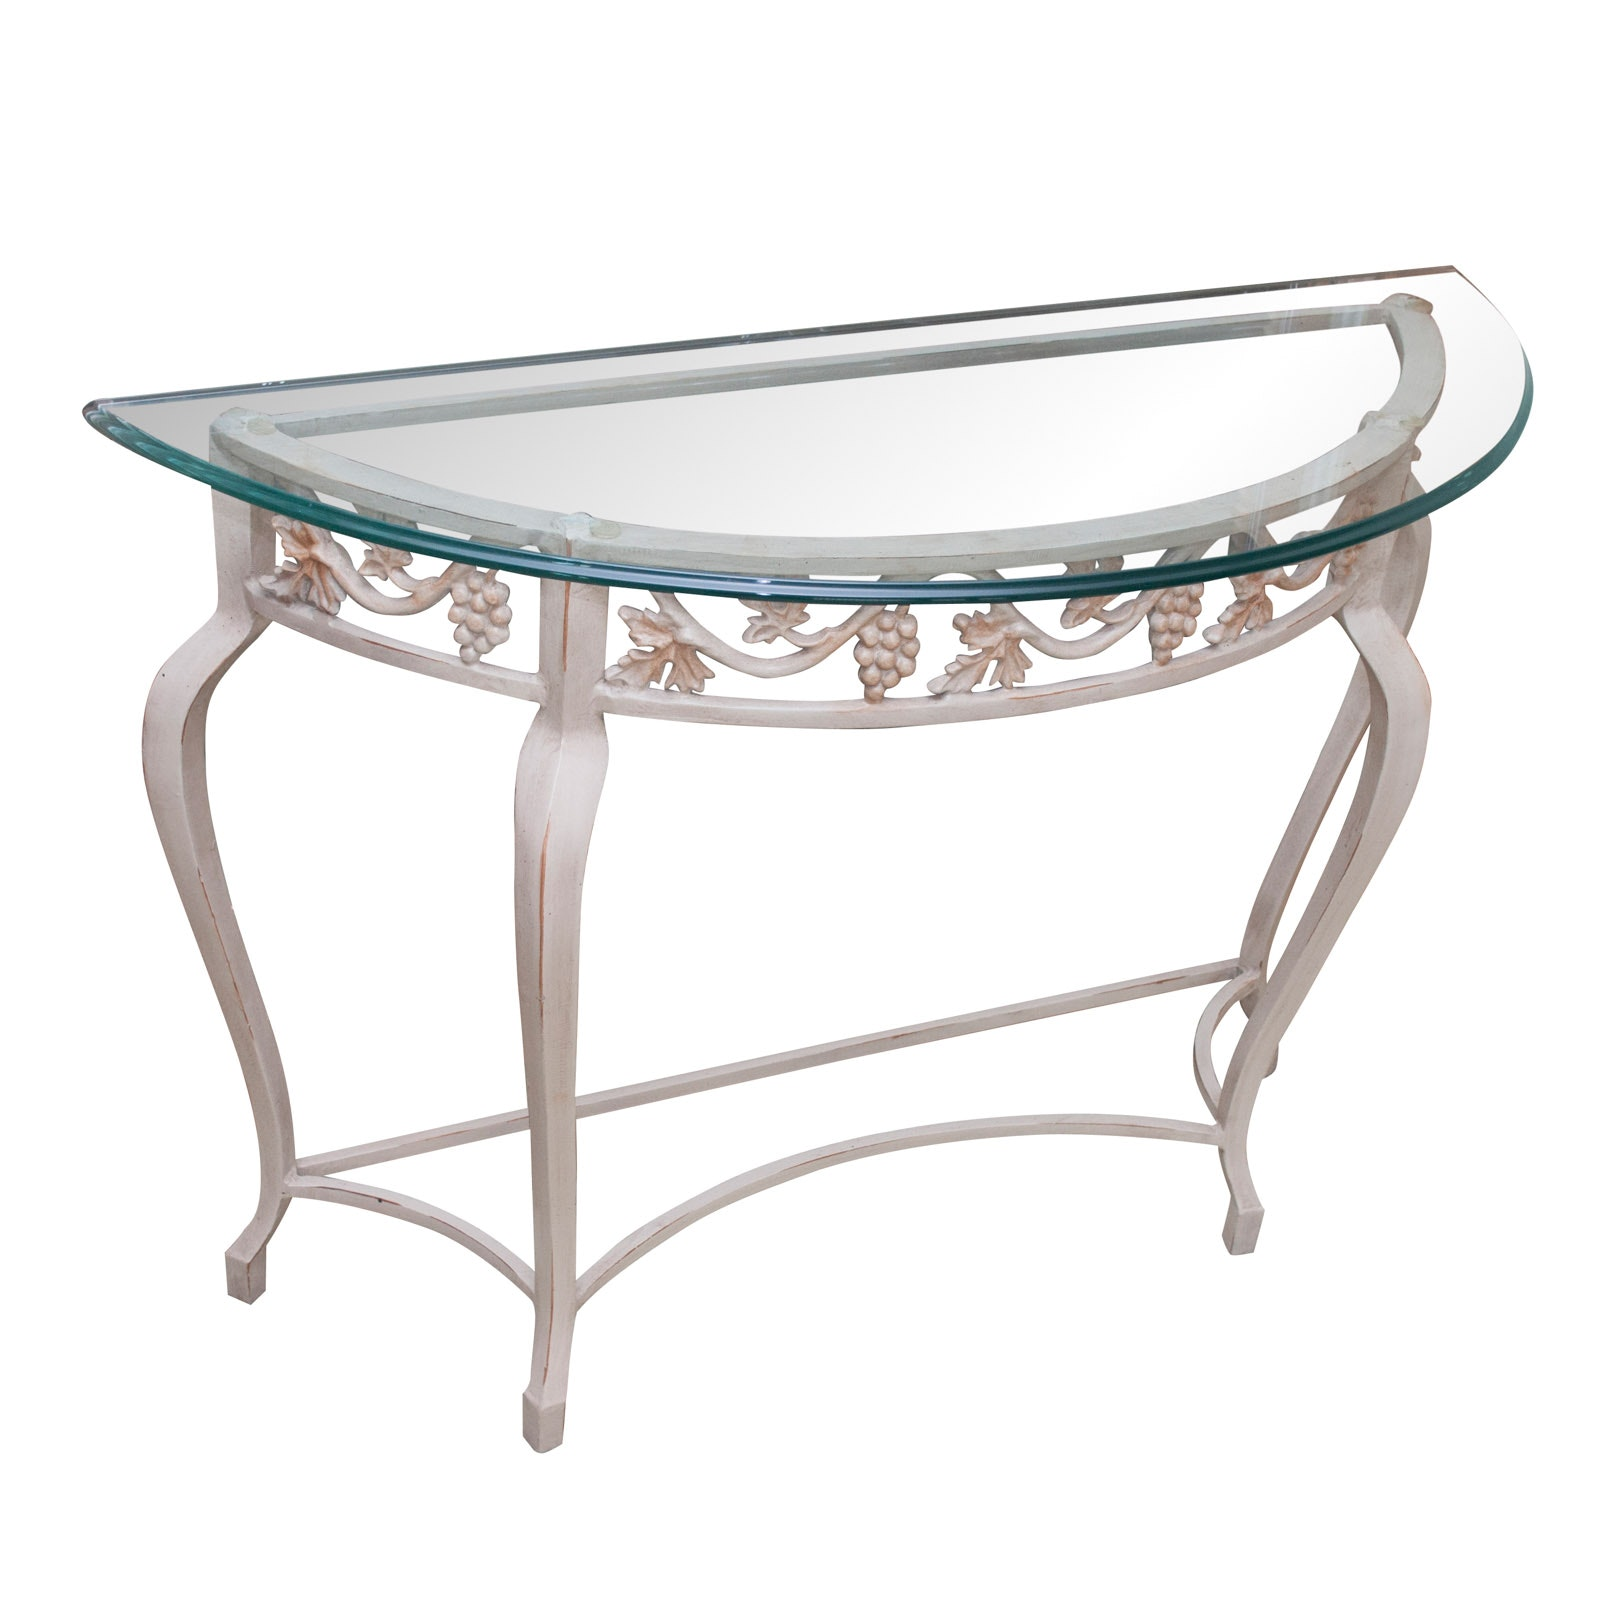 Metal Demilune Table with Glass Top